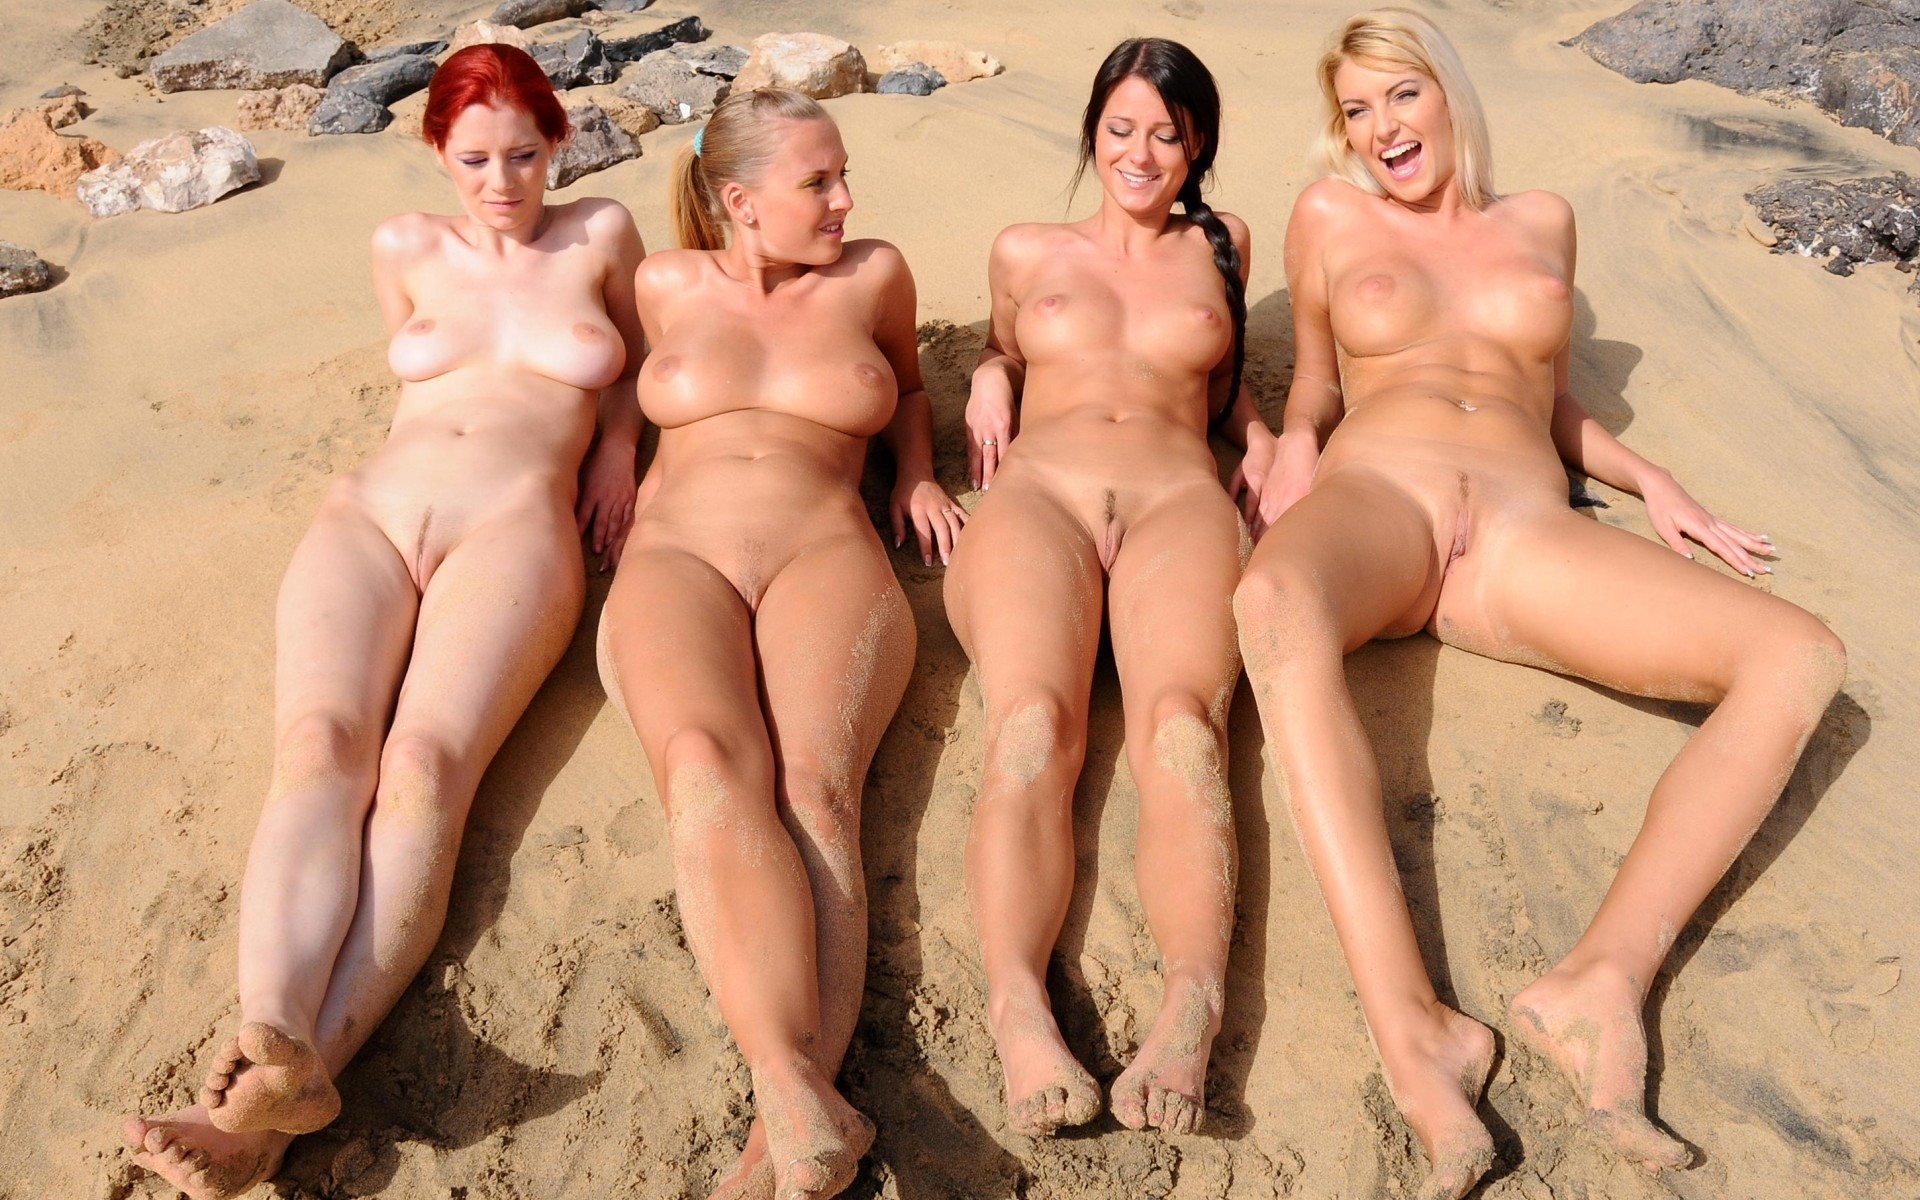 groups of women showing their butts